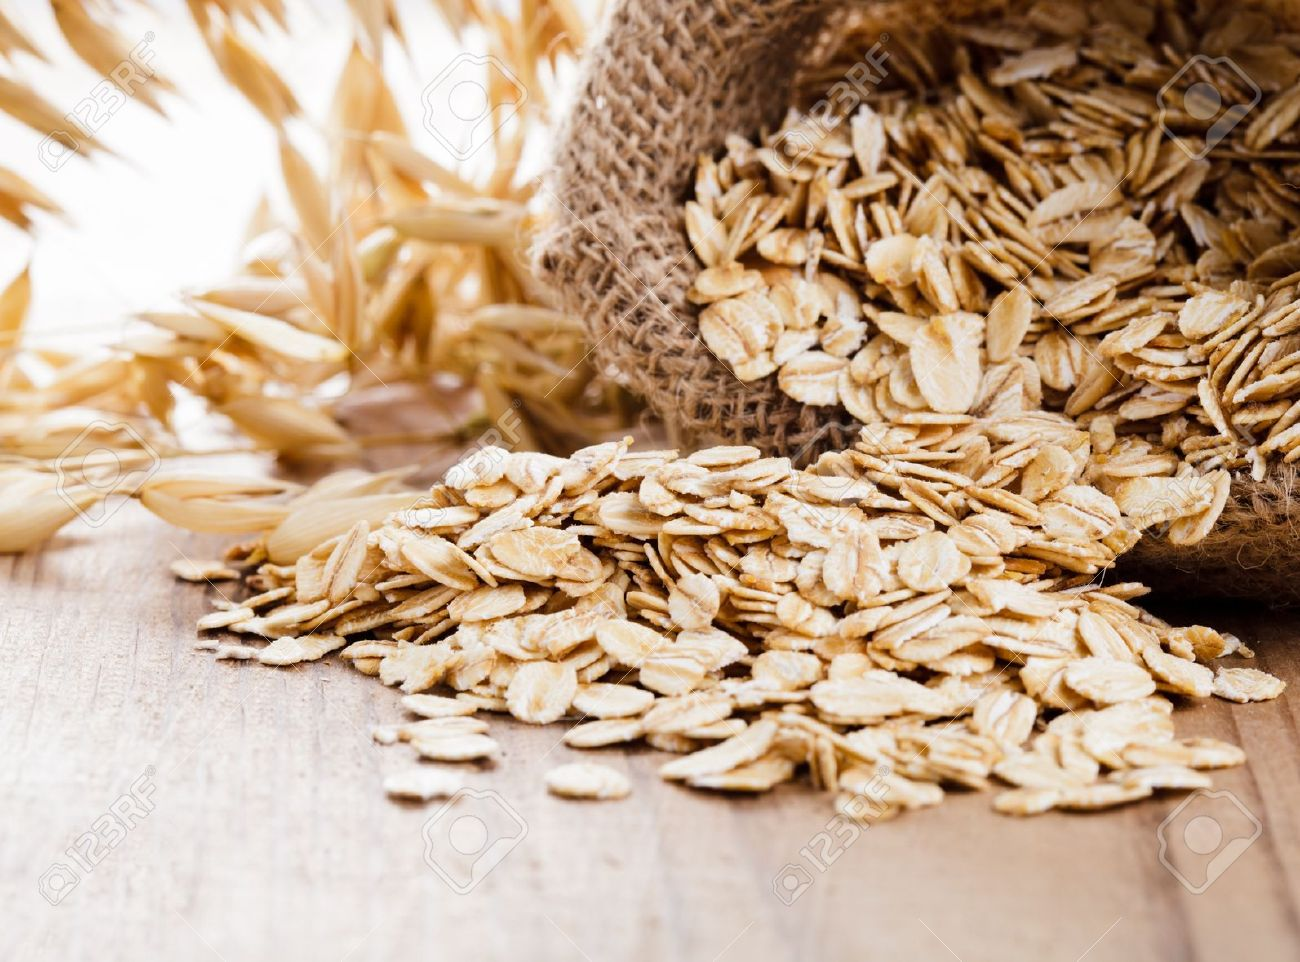 Oat flakes spilling from the burlap bag on wooden table Stock Photo - 10786482